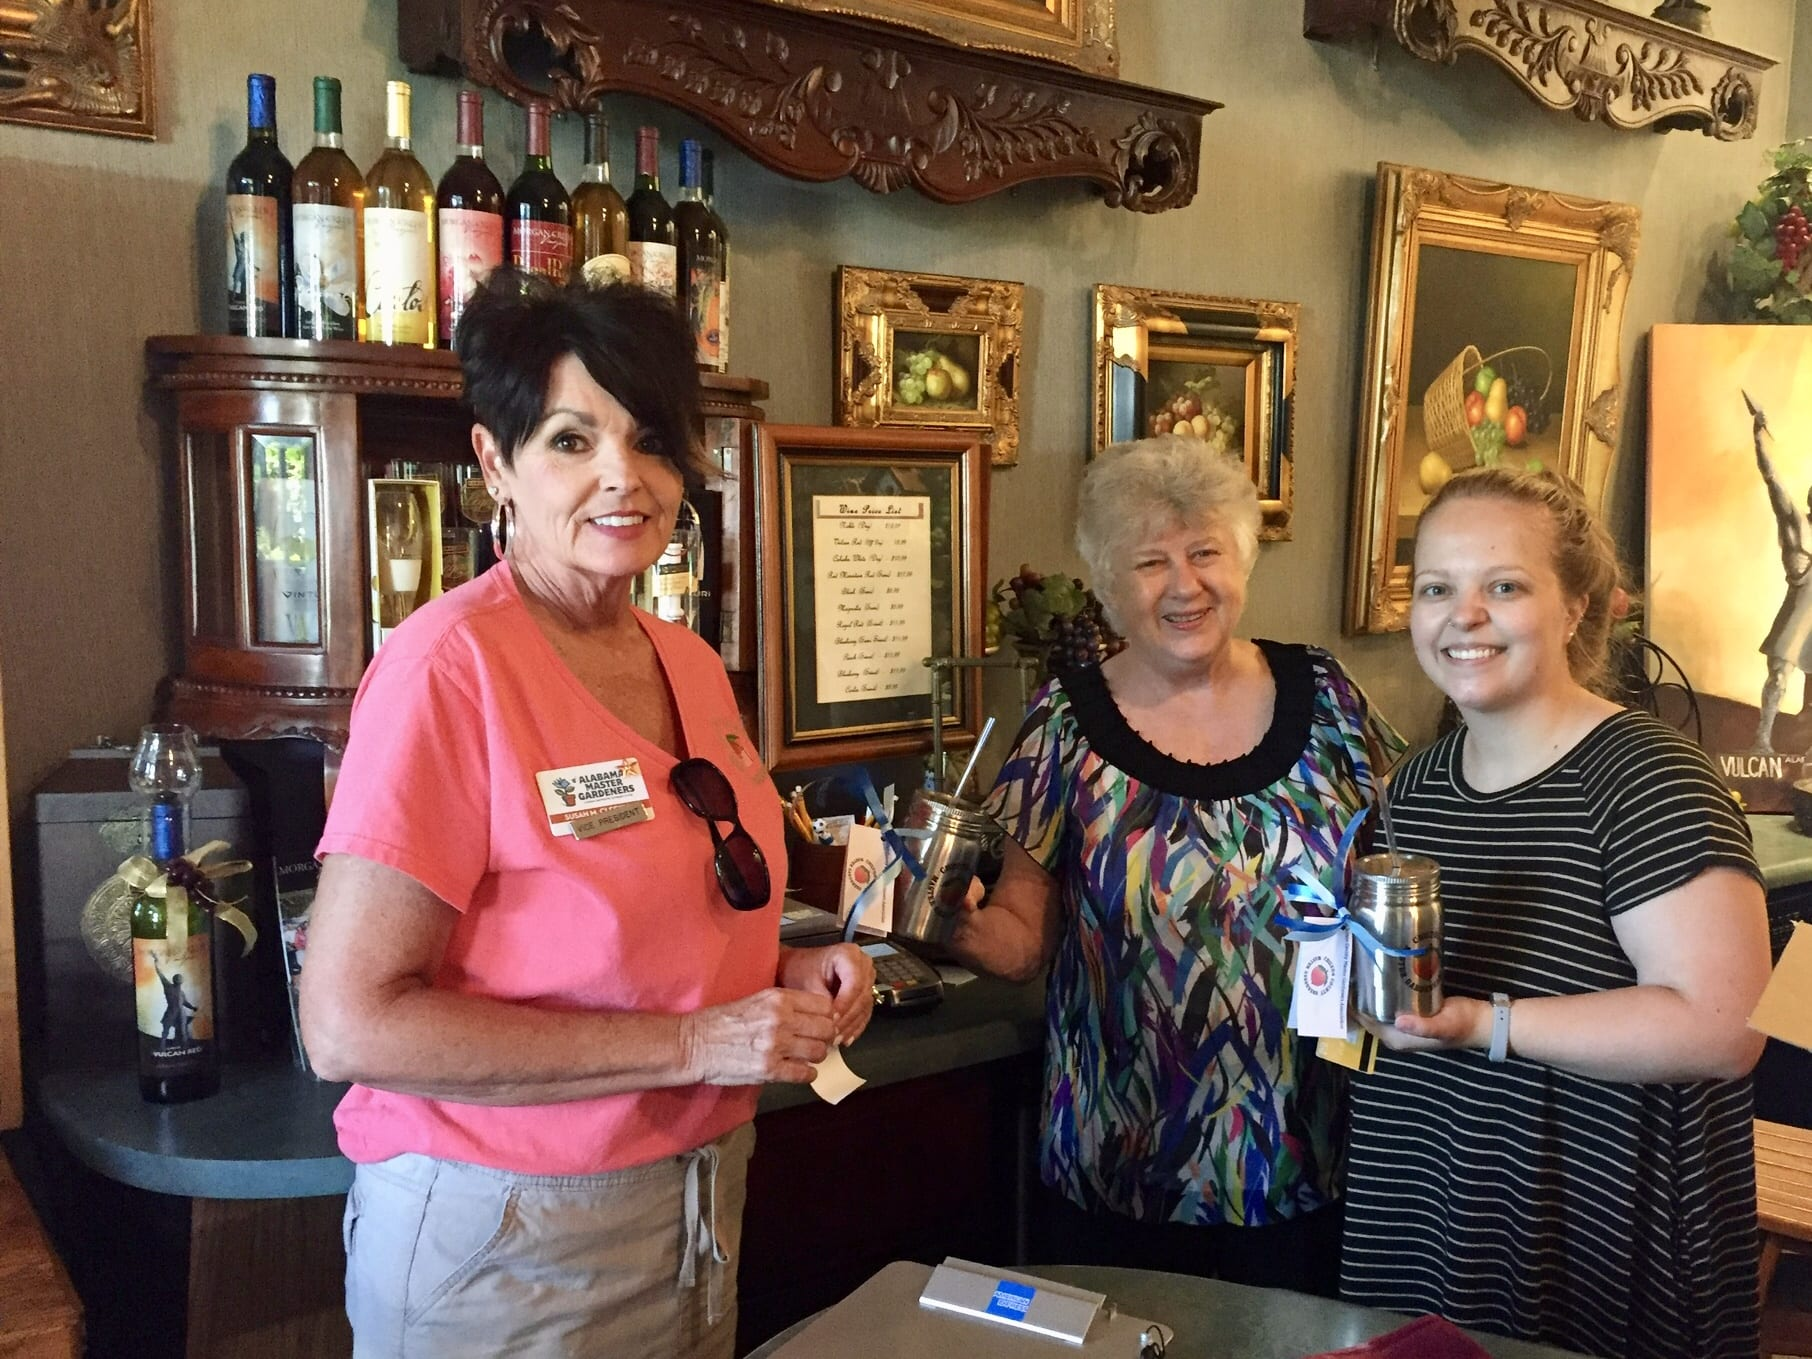 V.P. Giving hostesses at winery their gift.